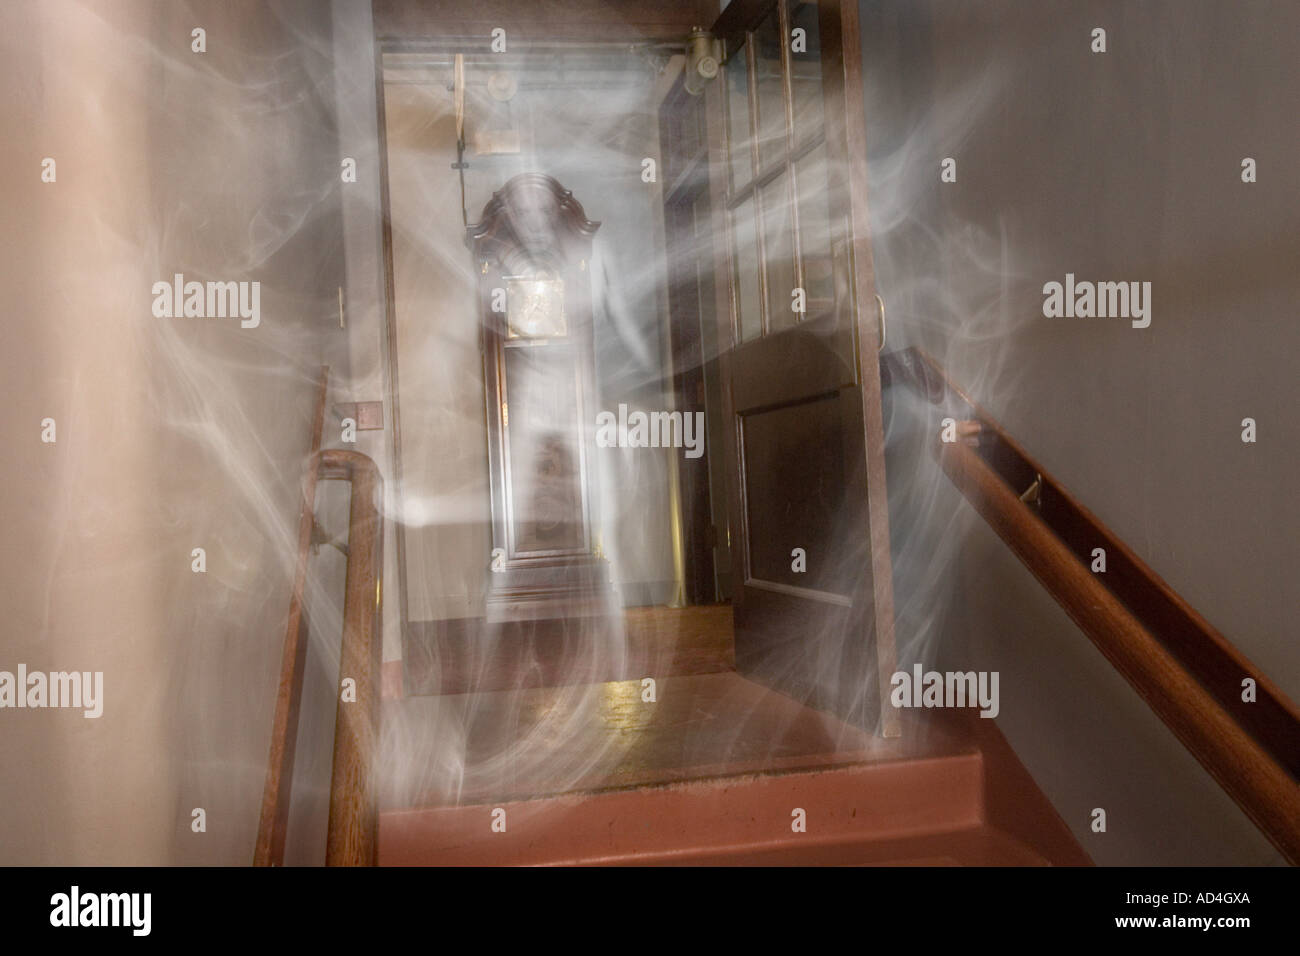 Full-Body Ghost apparition forming from mist - Stock Image